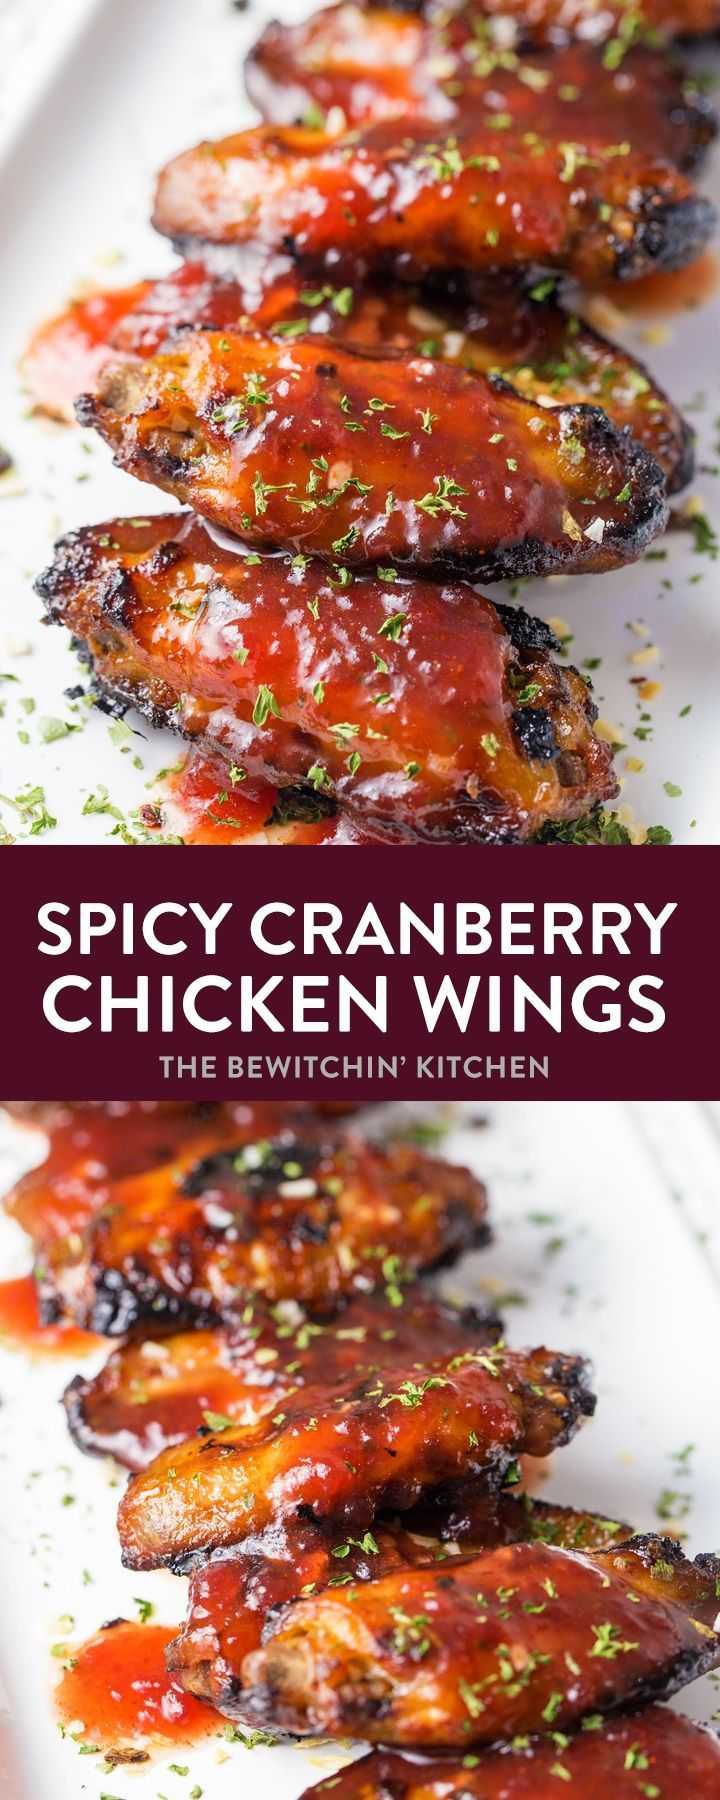 Spicy Cranberry Chicken Wings | The Bewitchin' Kitchen